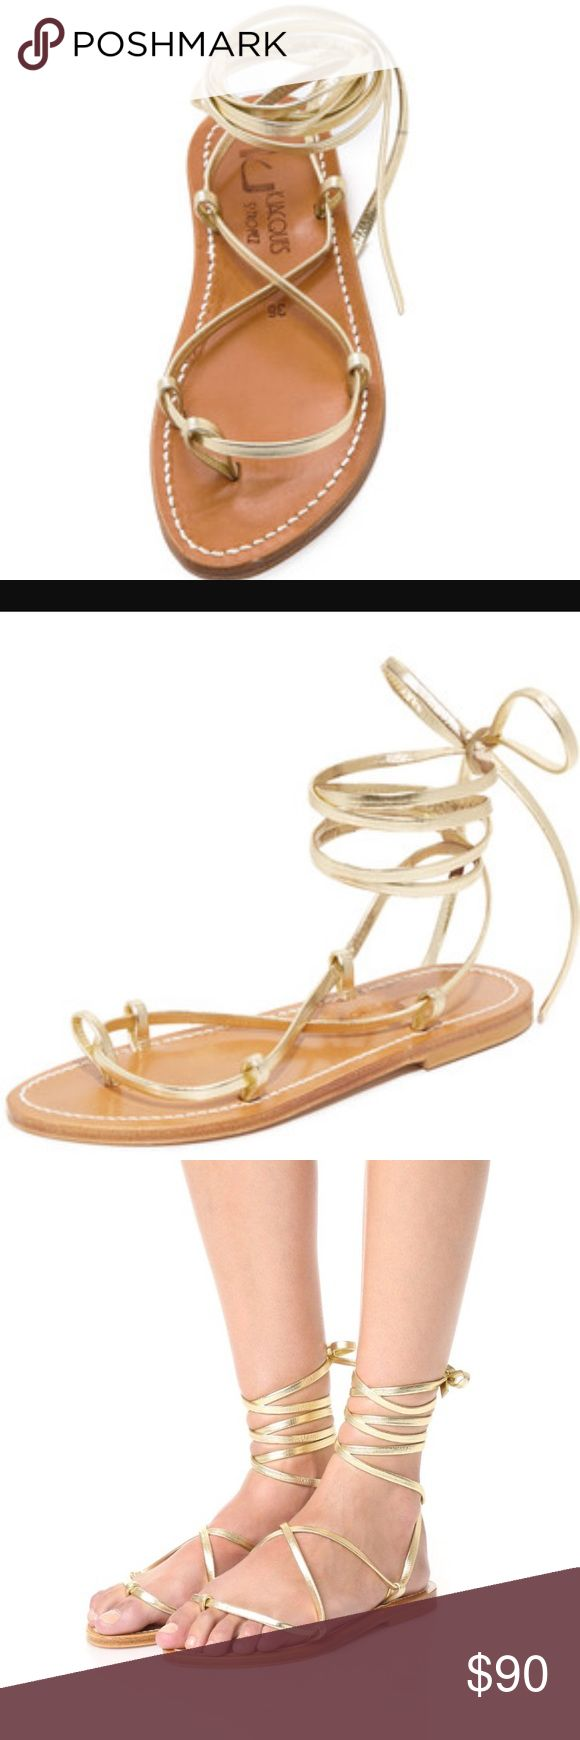 K. Jacques Bikini Wrap Gladiator Sandal. Size 36/6 Classic K. Jacques sandals in metallic leather. Slim wraparound straps cross at the vamp and tie at the ankle. Leather sole. Calfskin leather. Made in France. Size 36/6. Worn very minimally - in great condition. Everything must go! K. Jacques Shoes Sandals